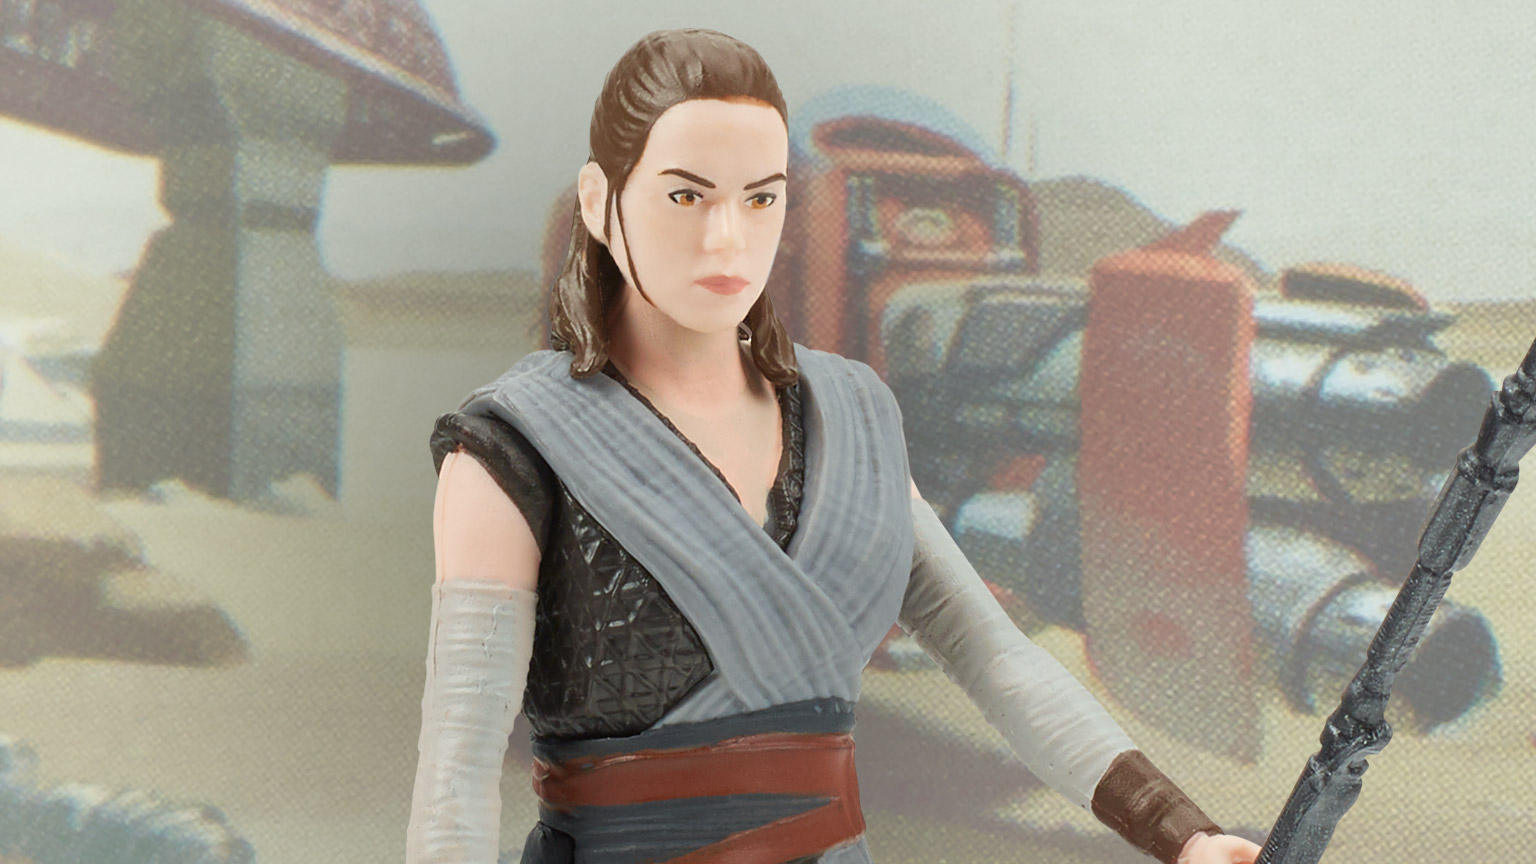 A Rey action figure, part of Hasbro's next wave of Star Wars Galaxy of Adventures figures.